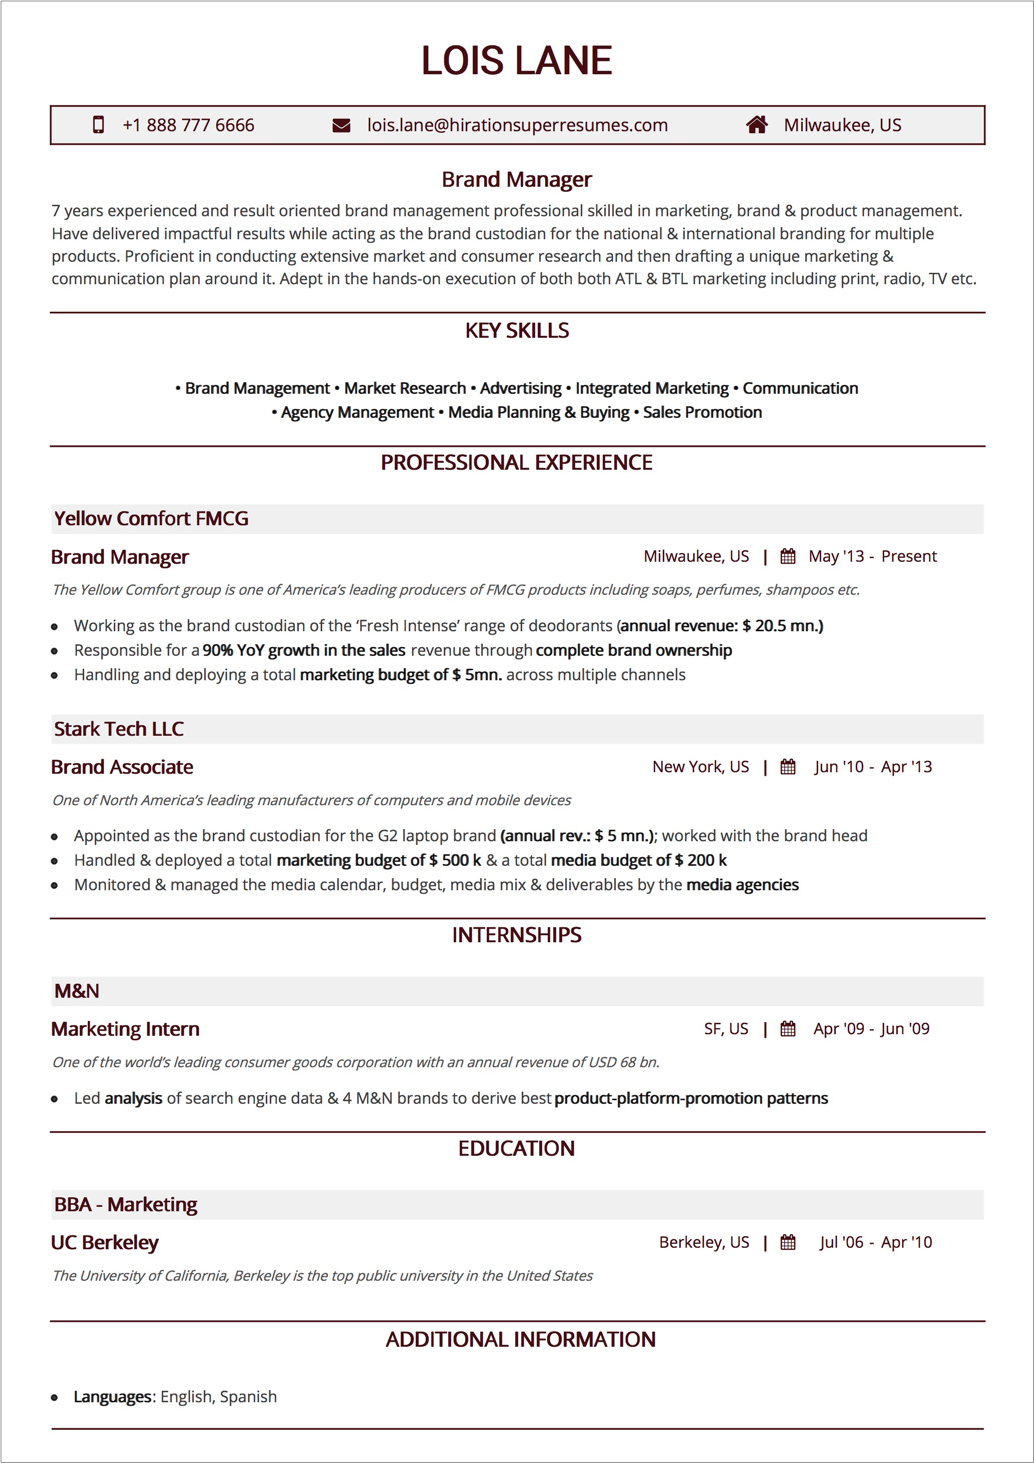 reverse_chronological_resume_format-1